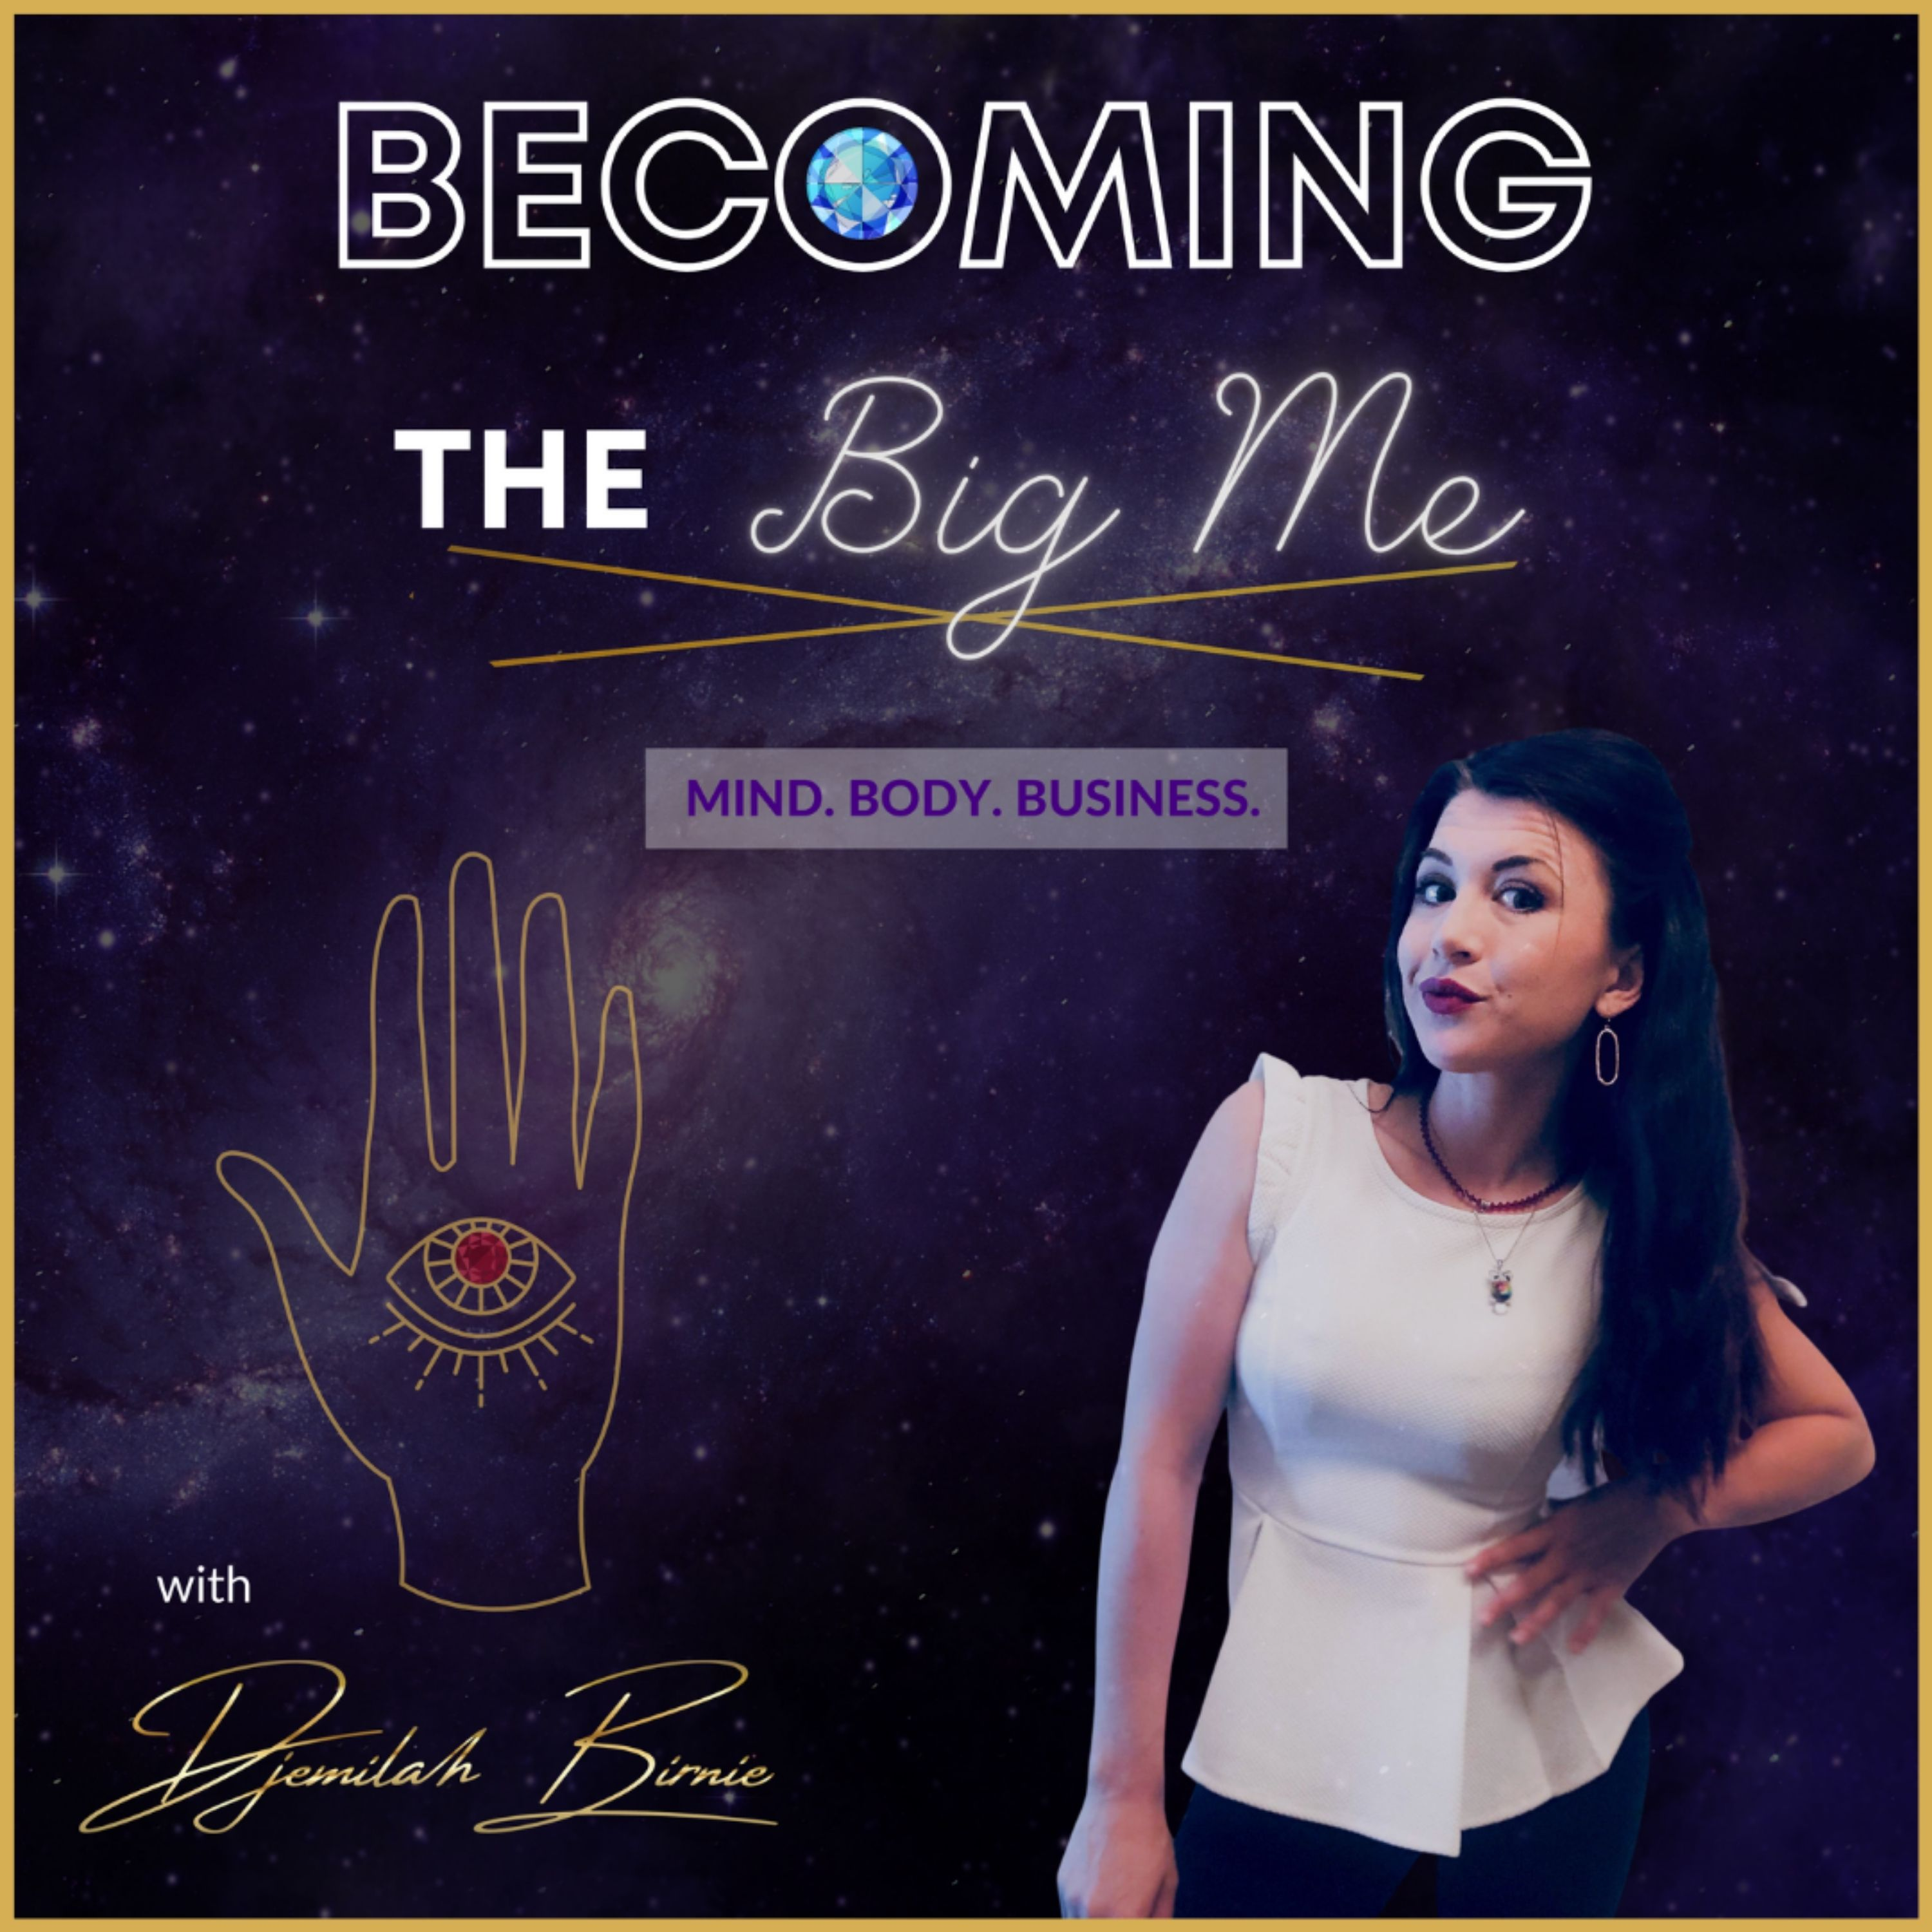 Artwork for podcast The Becoming the Big Me Podcast